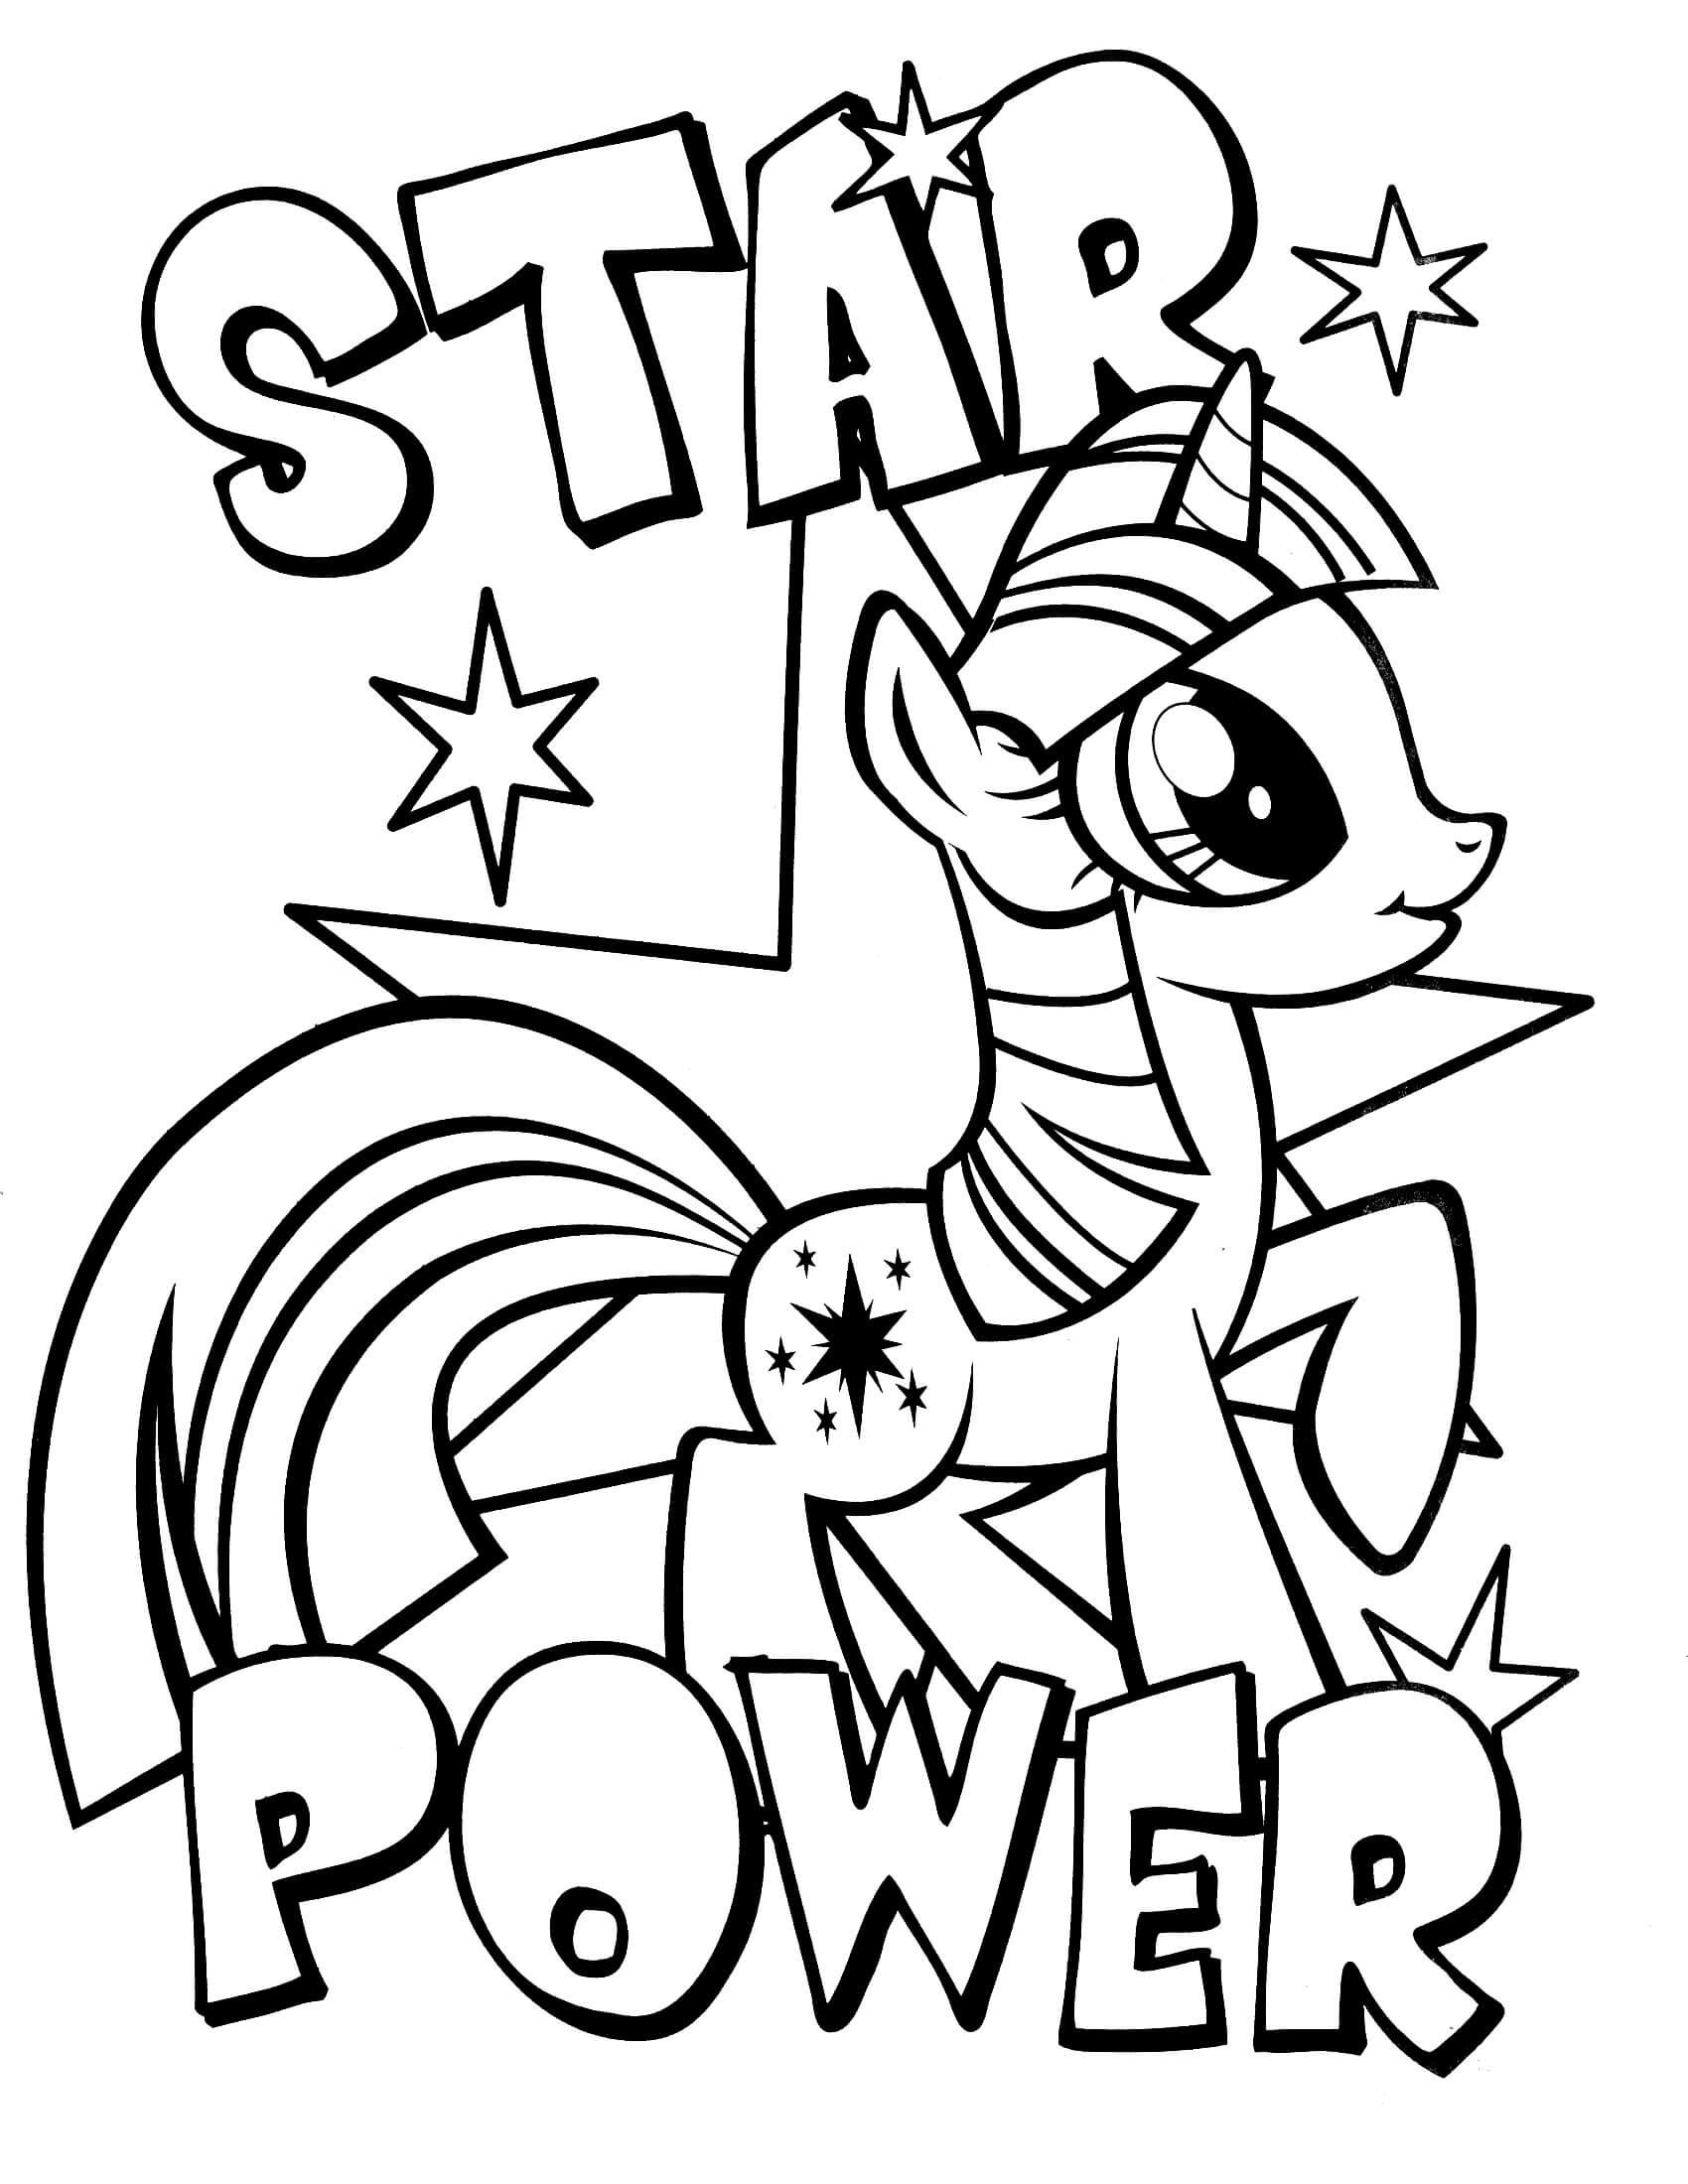 coloring pages of my little pony images of my little pony coloring pages at getdrawings pony pages little my of coloring